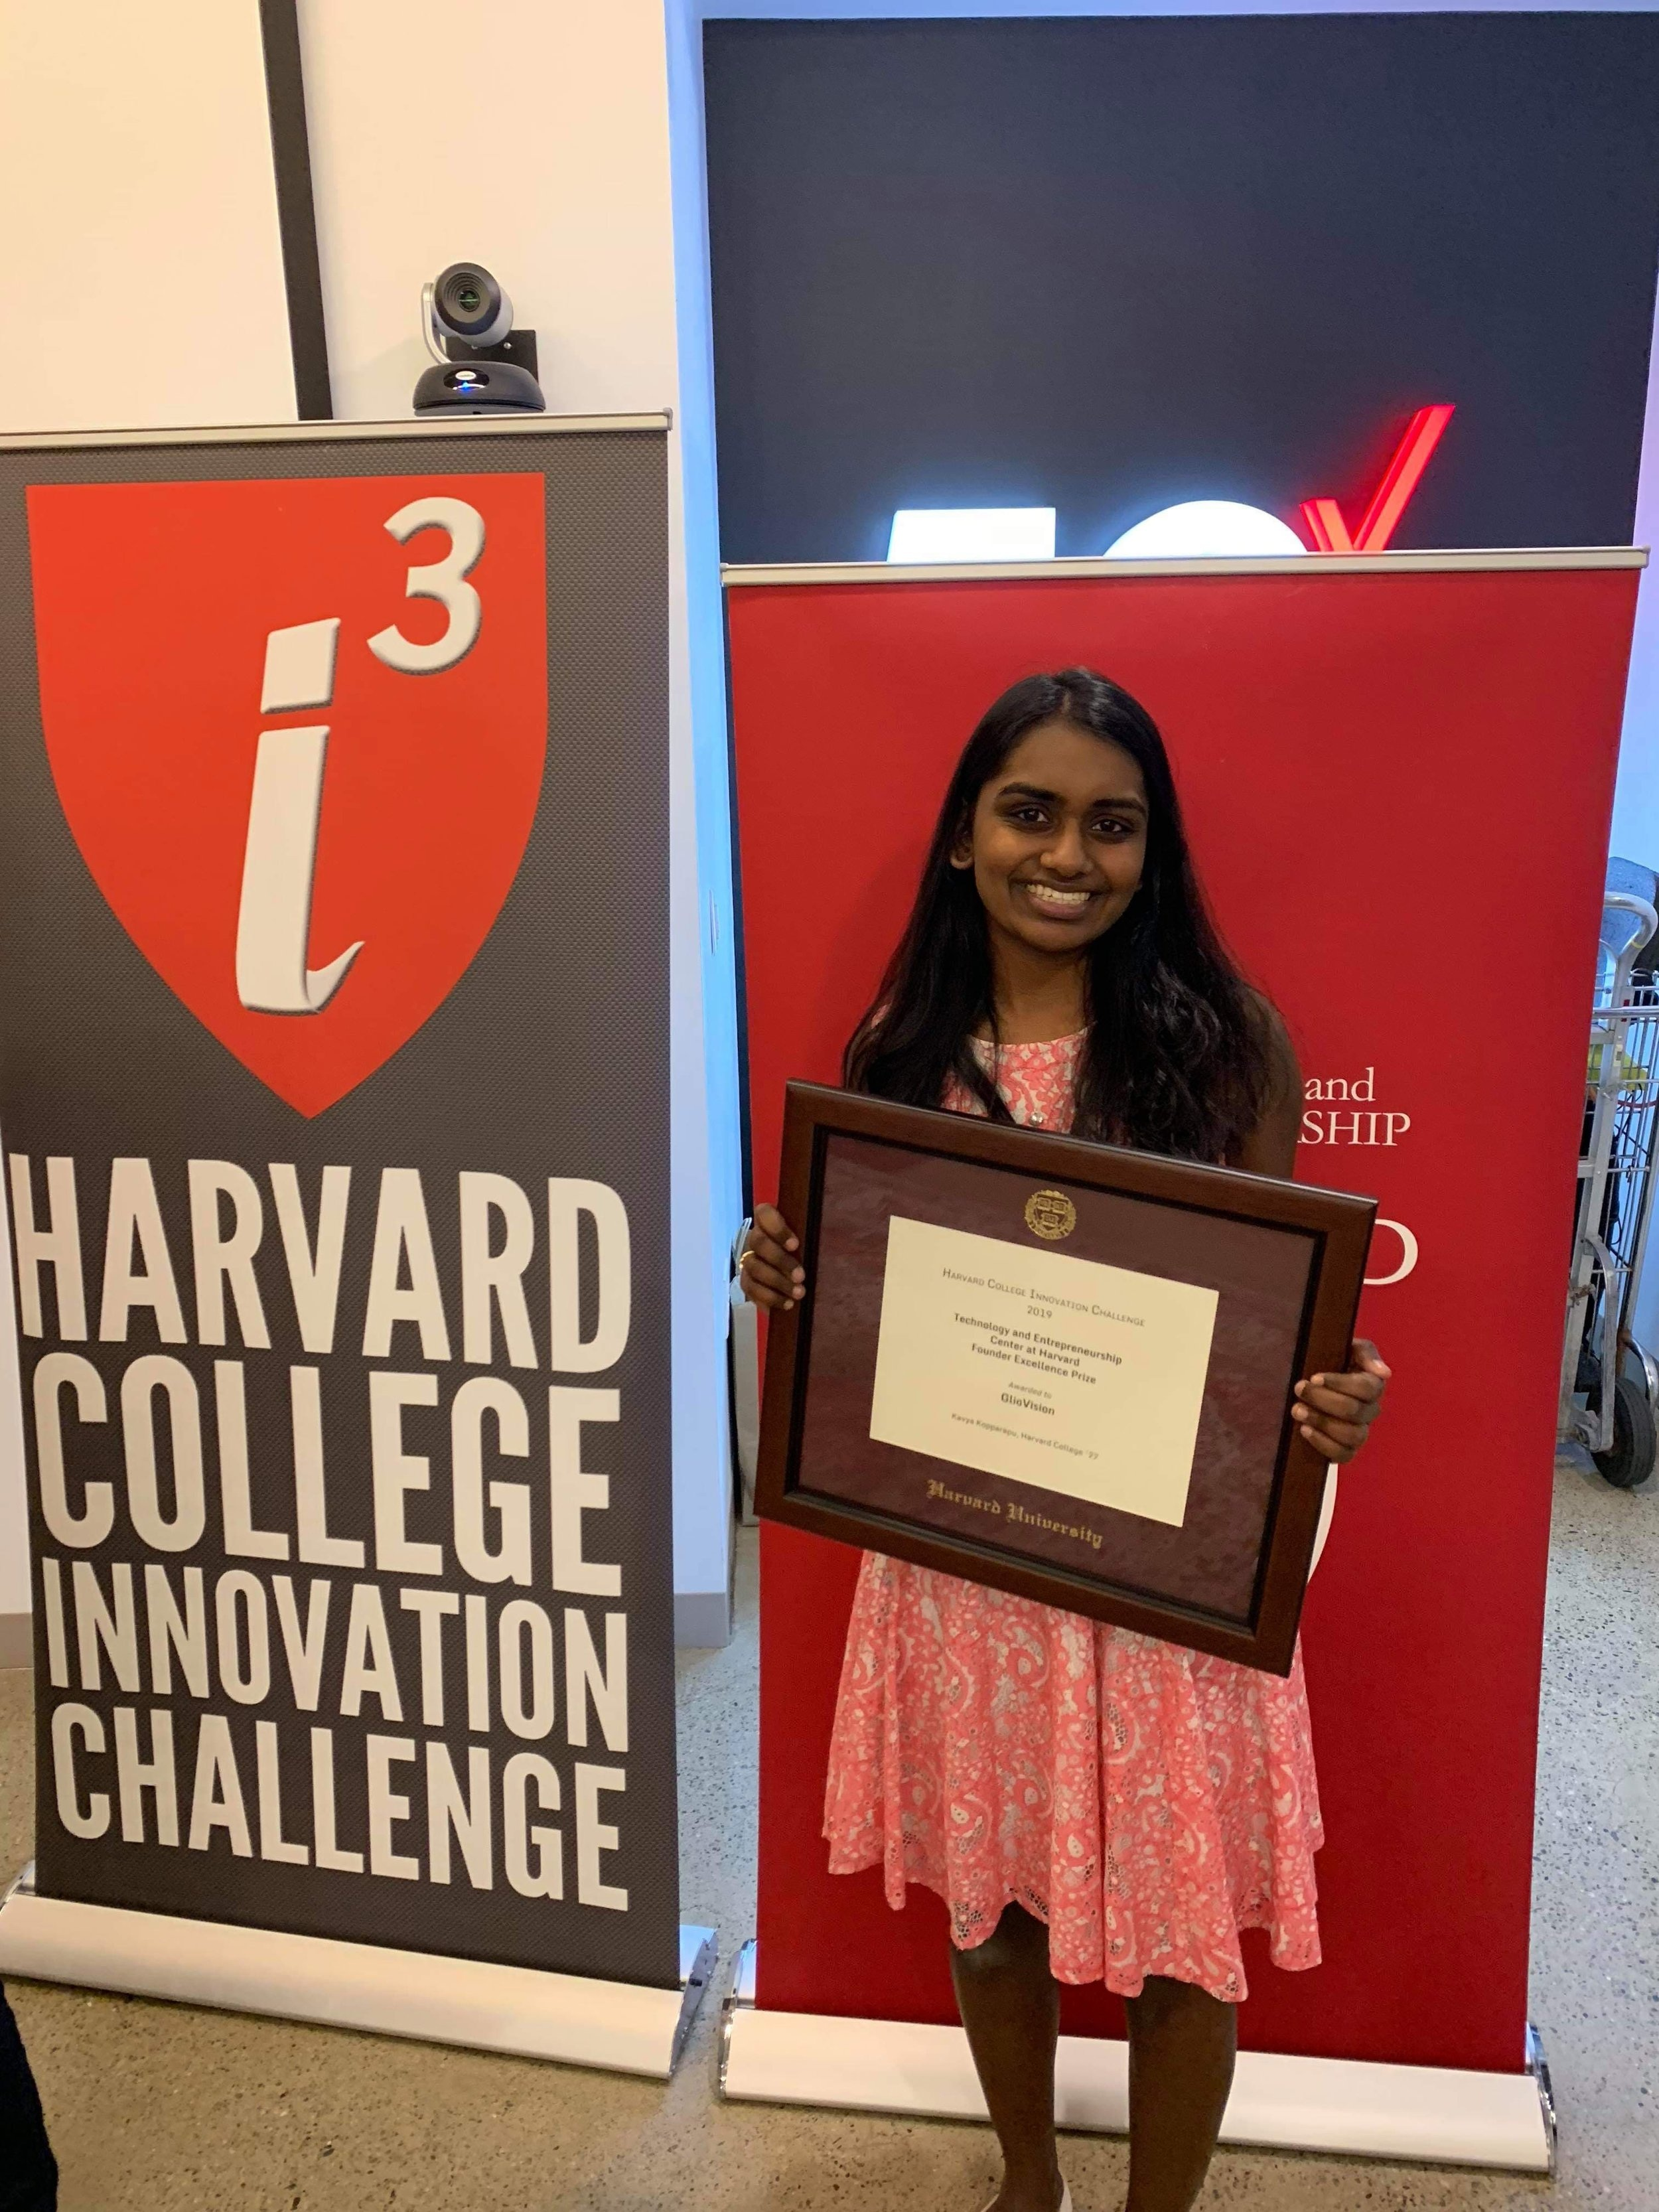 Harvard College Innovation Challenge Founder Excellence Prize Winner